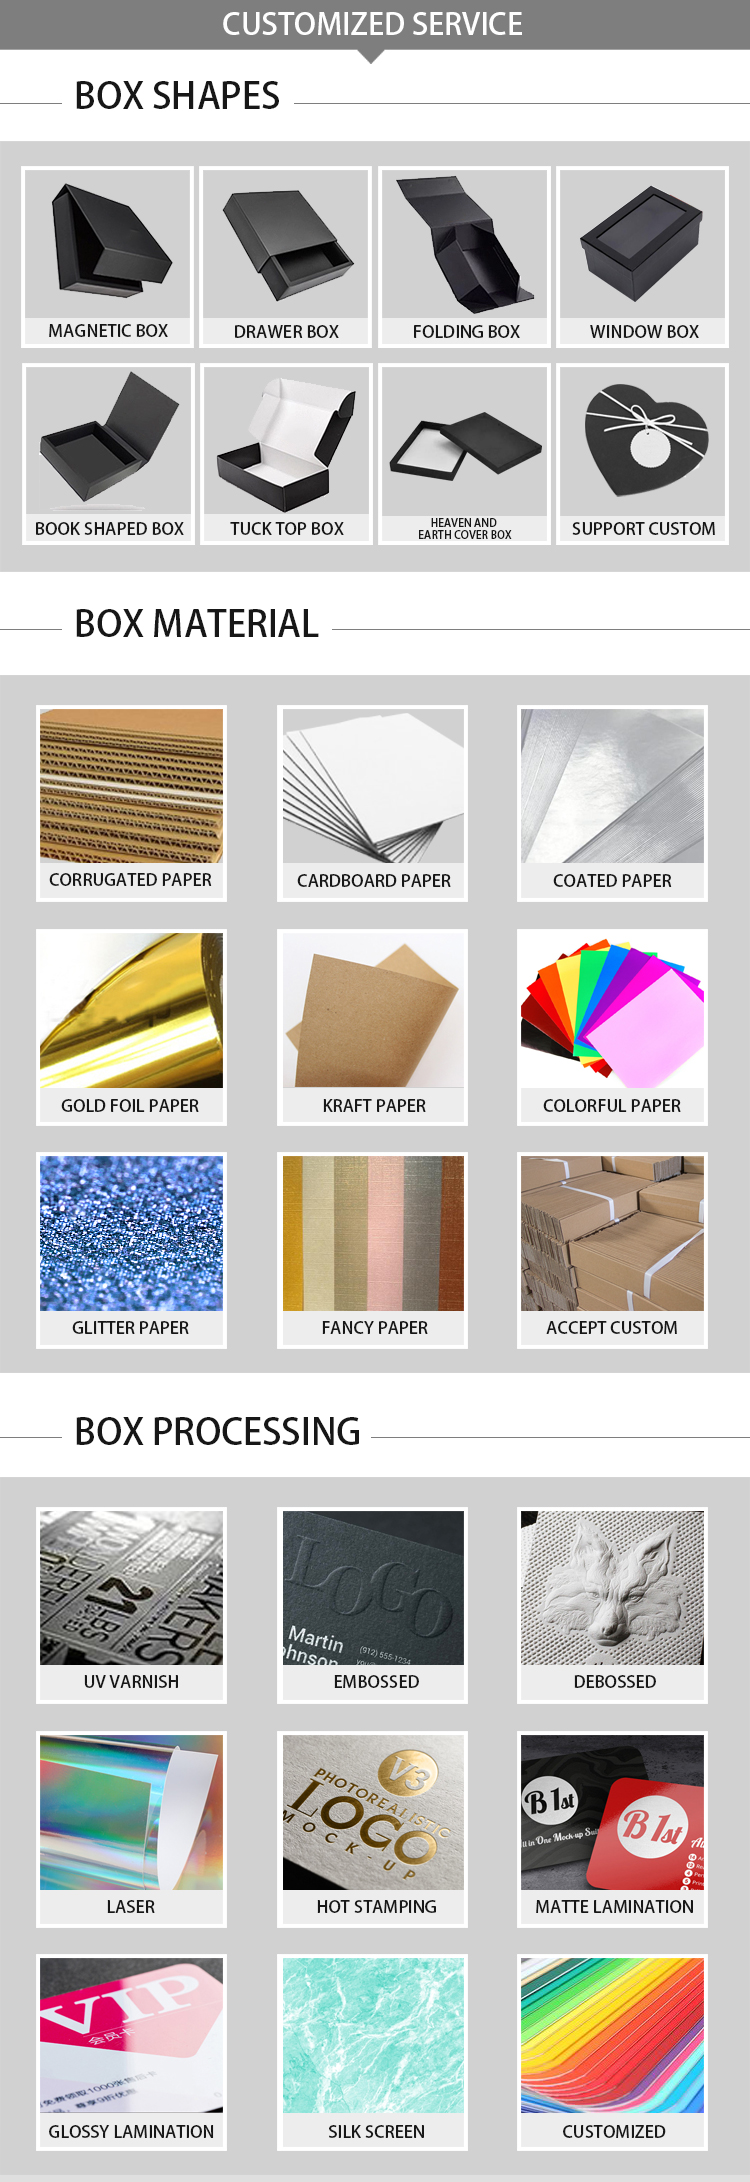 cardboard box manufacturers Supply-16